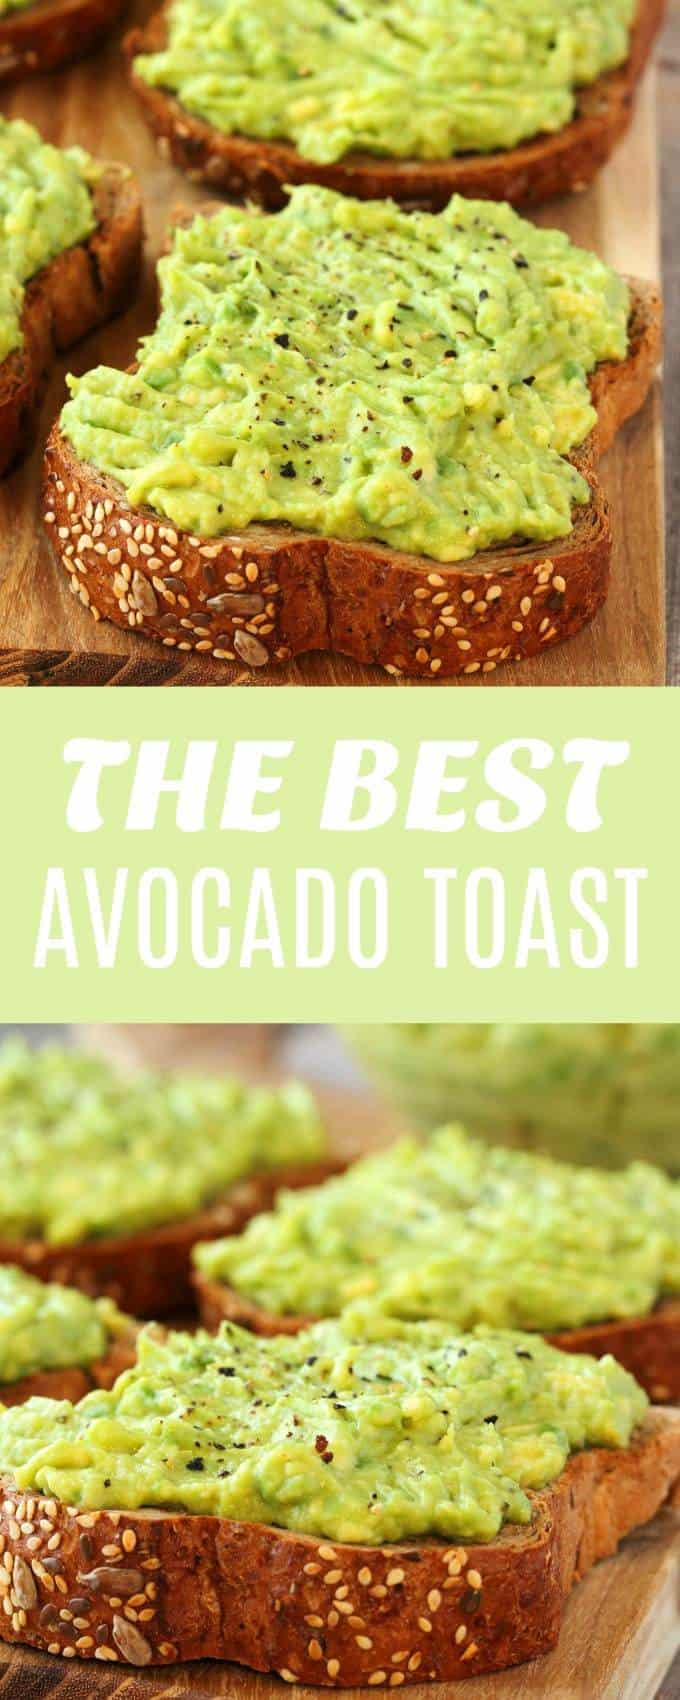 The most perfectly simple avocado toast recipe. Quick, easy and minimalist to ideally bring out the flavors. Great for breakfast or a healthy snack! | lovingitvegan.com